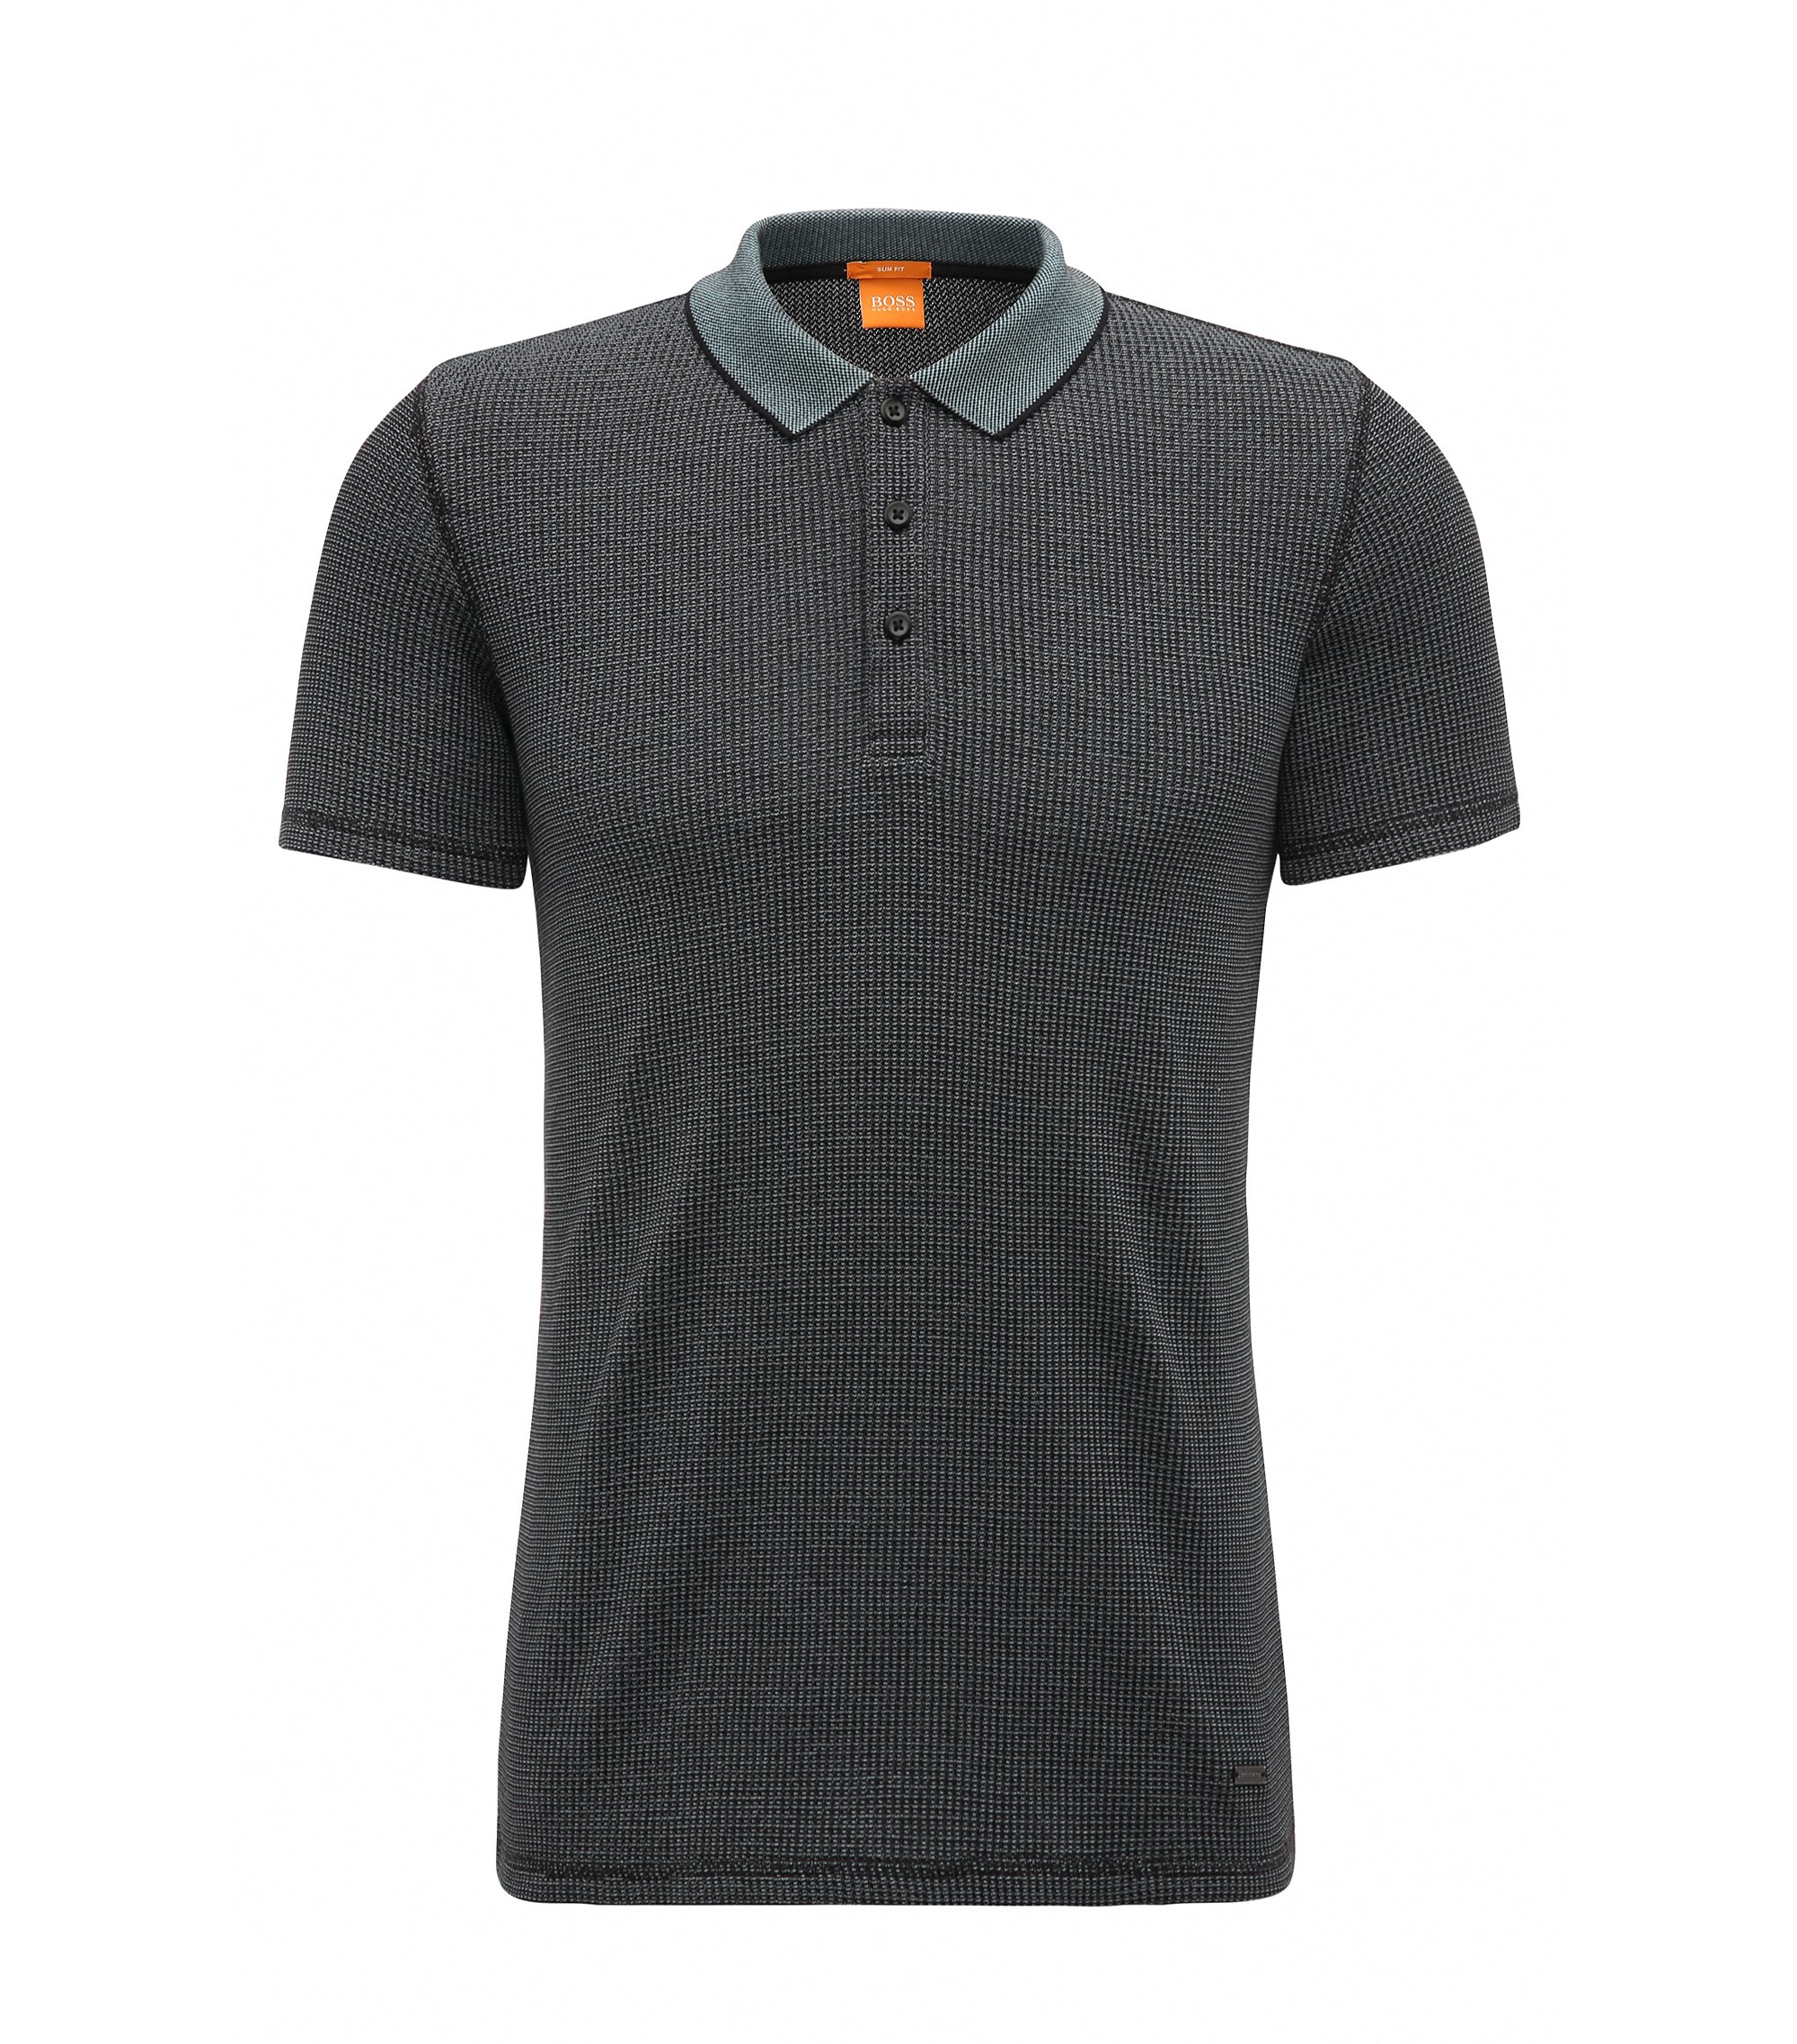 Knit Cotton Blend Polo Shirt, Slim Fit | Poser, Black